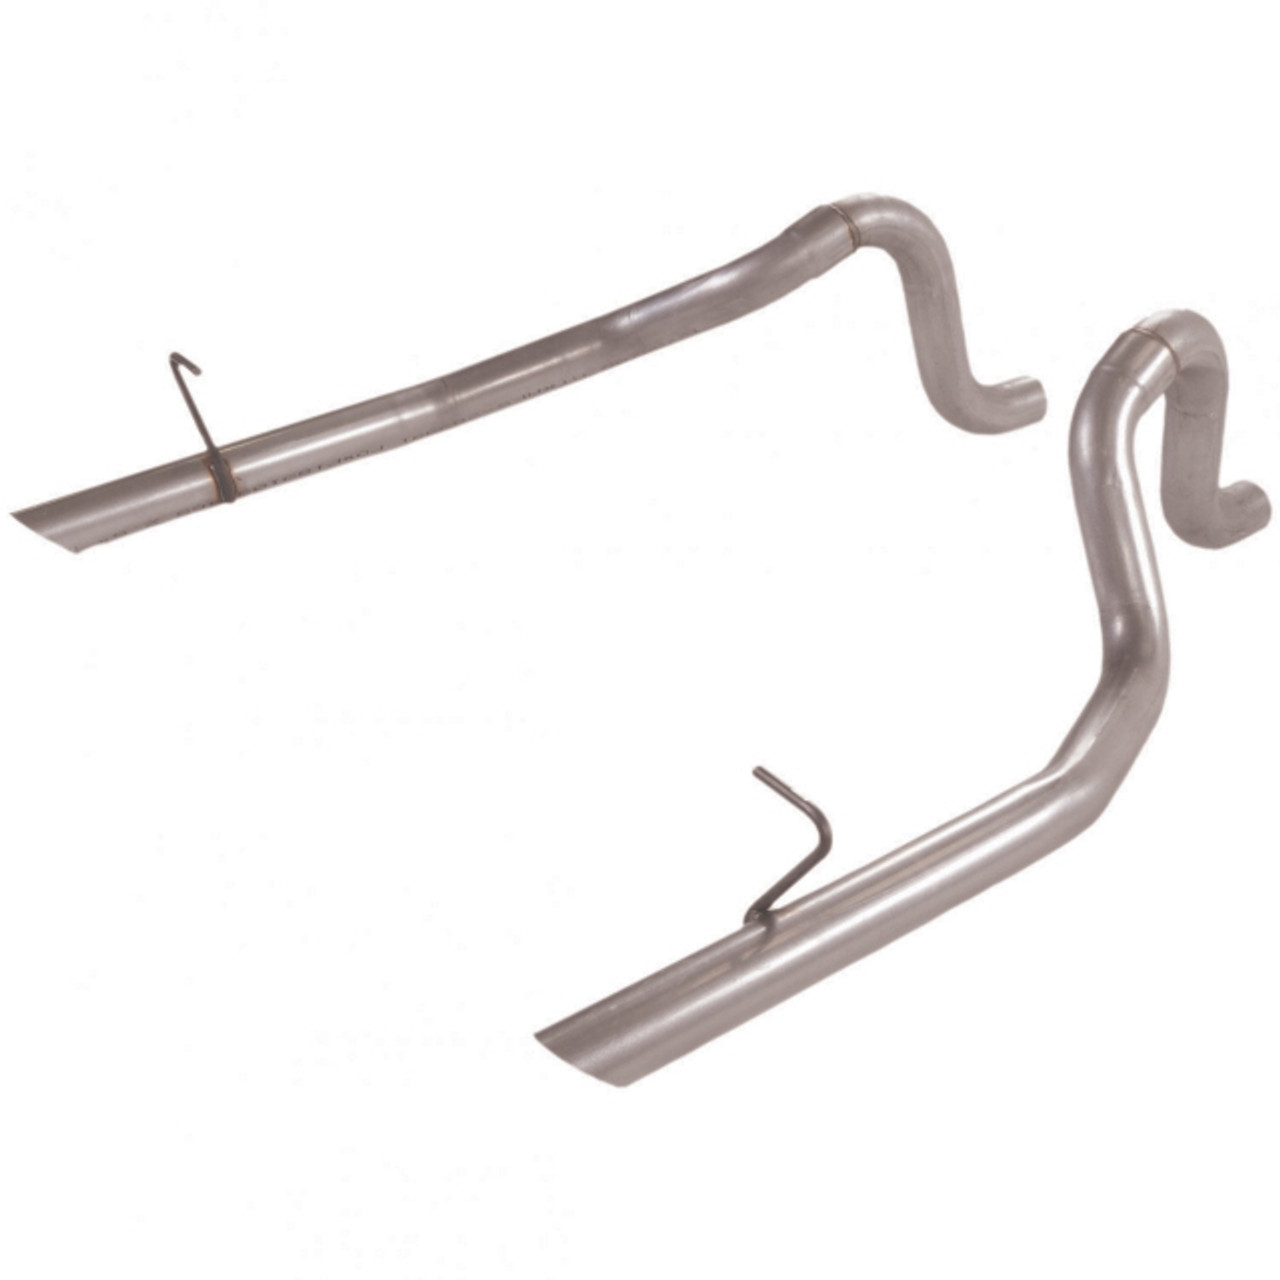 Flowmaster 1987-93 Ford Mustang, LX 5.0 Prebent Tailpipes - 2.50 in. Rear